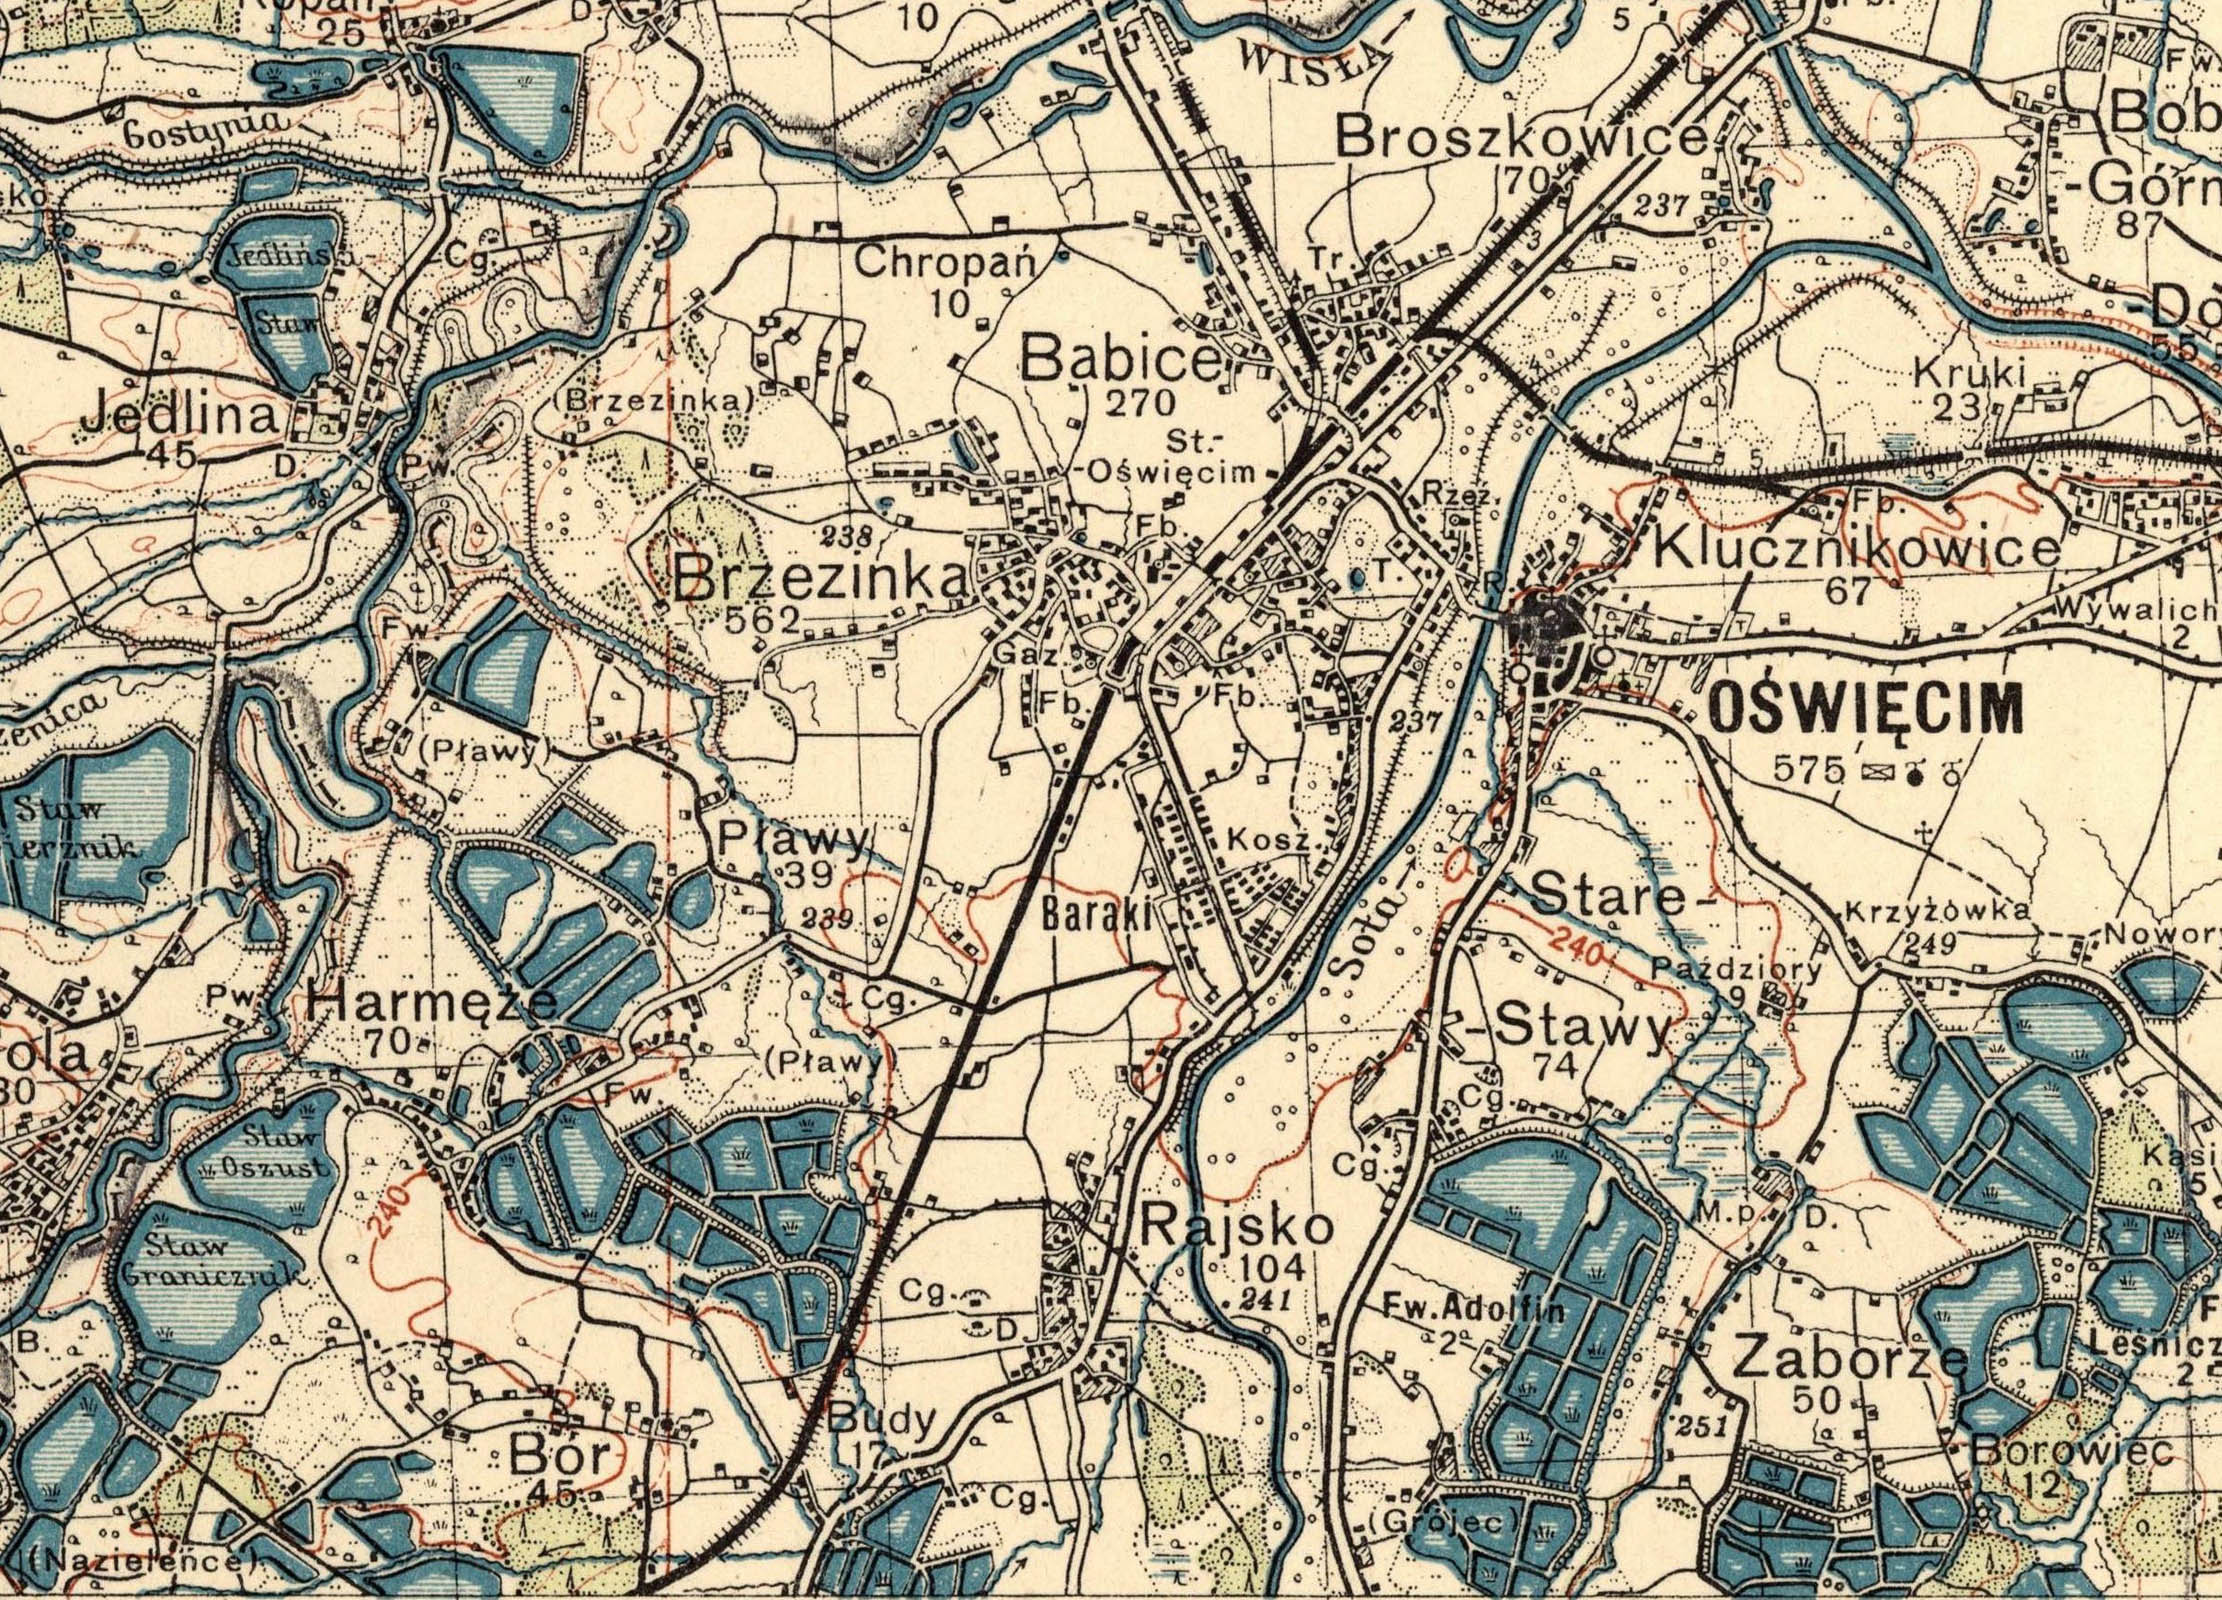 Ordinance survey map of1933. Agricultural areas around Oswiecim Babice, Harmeze, Plawy, Rajsko, Budy